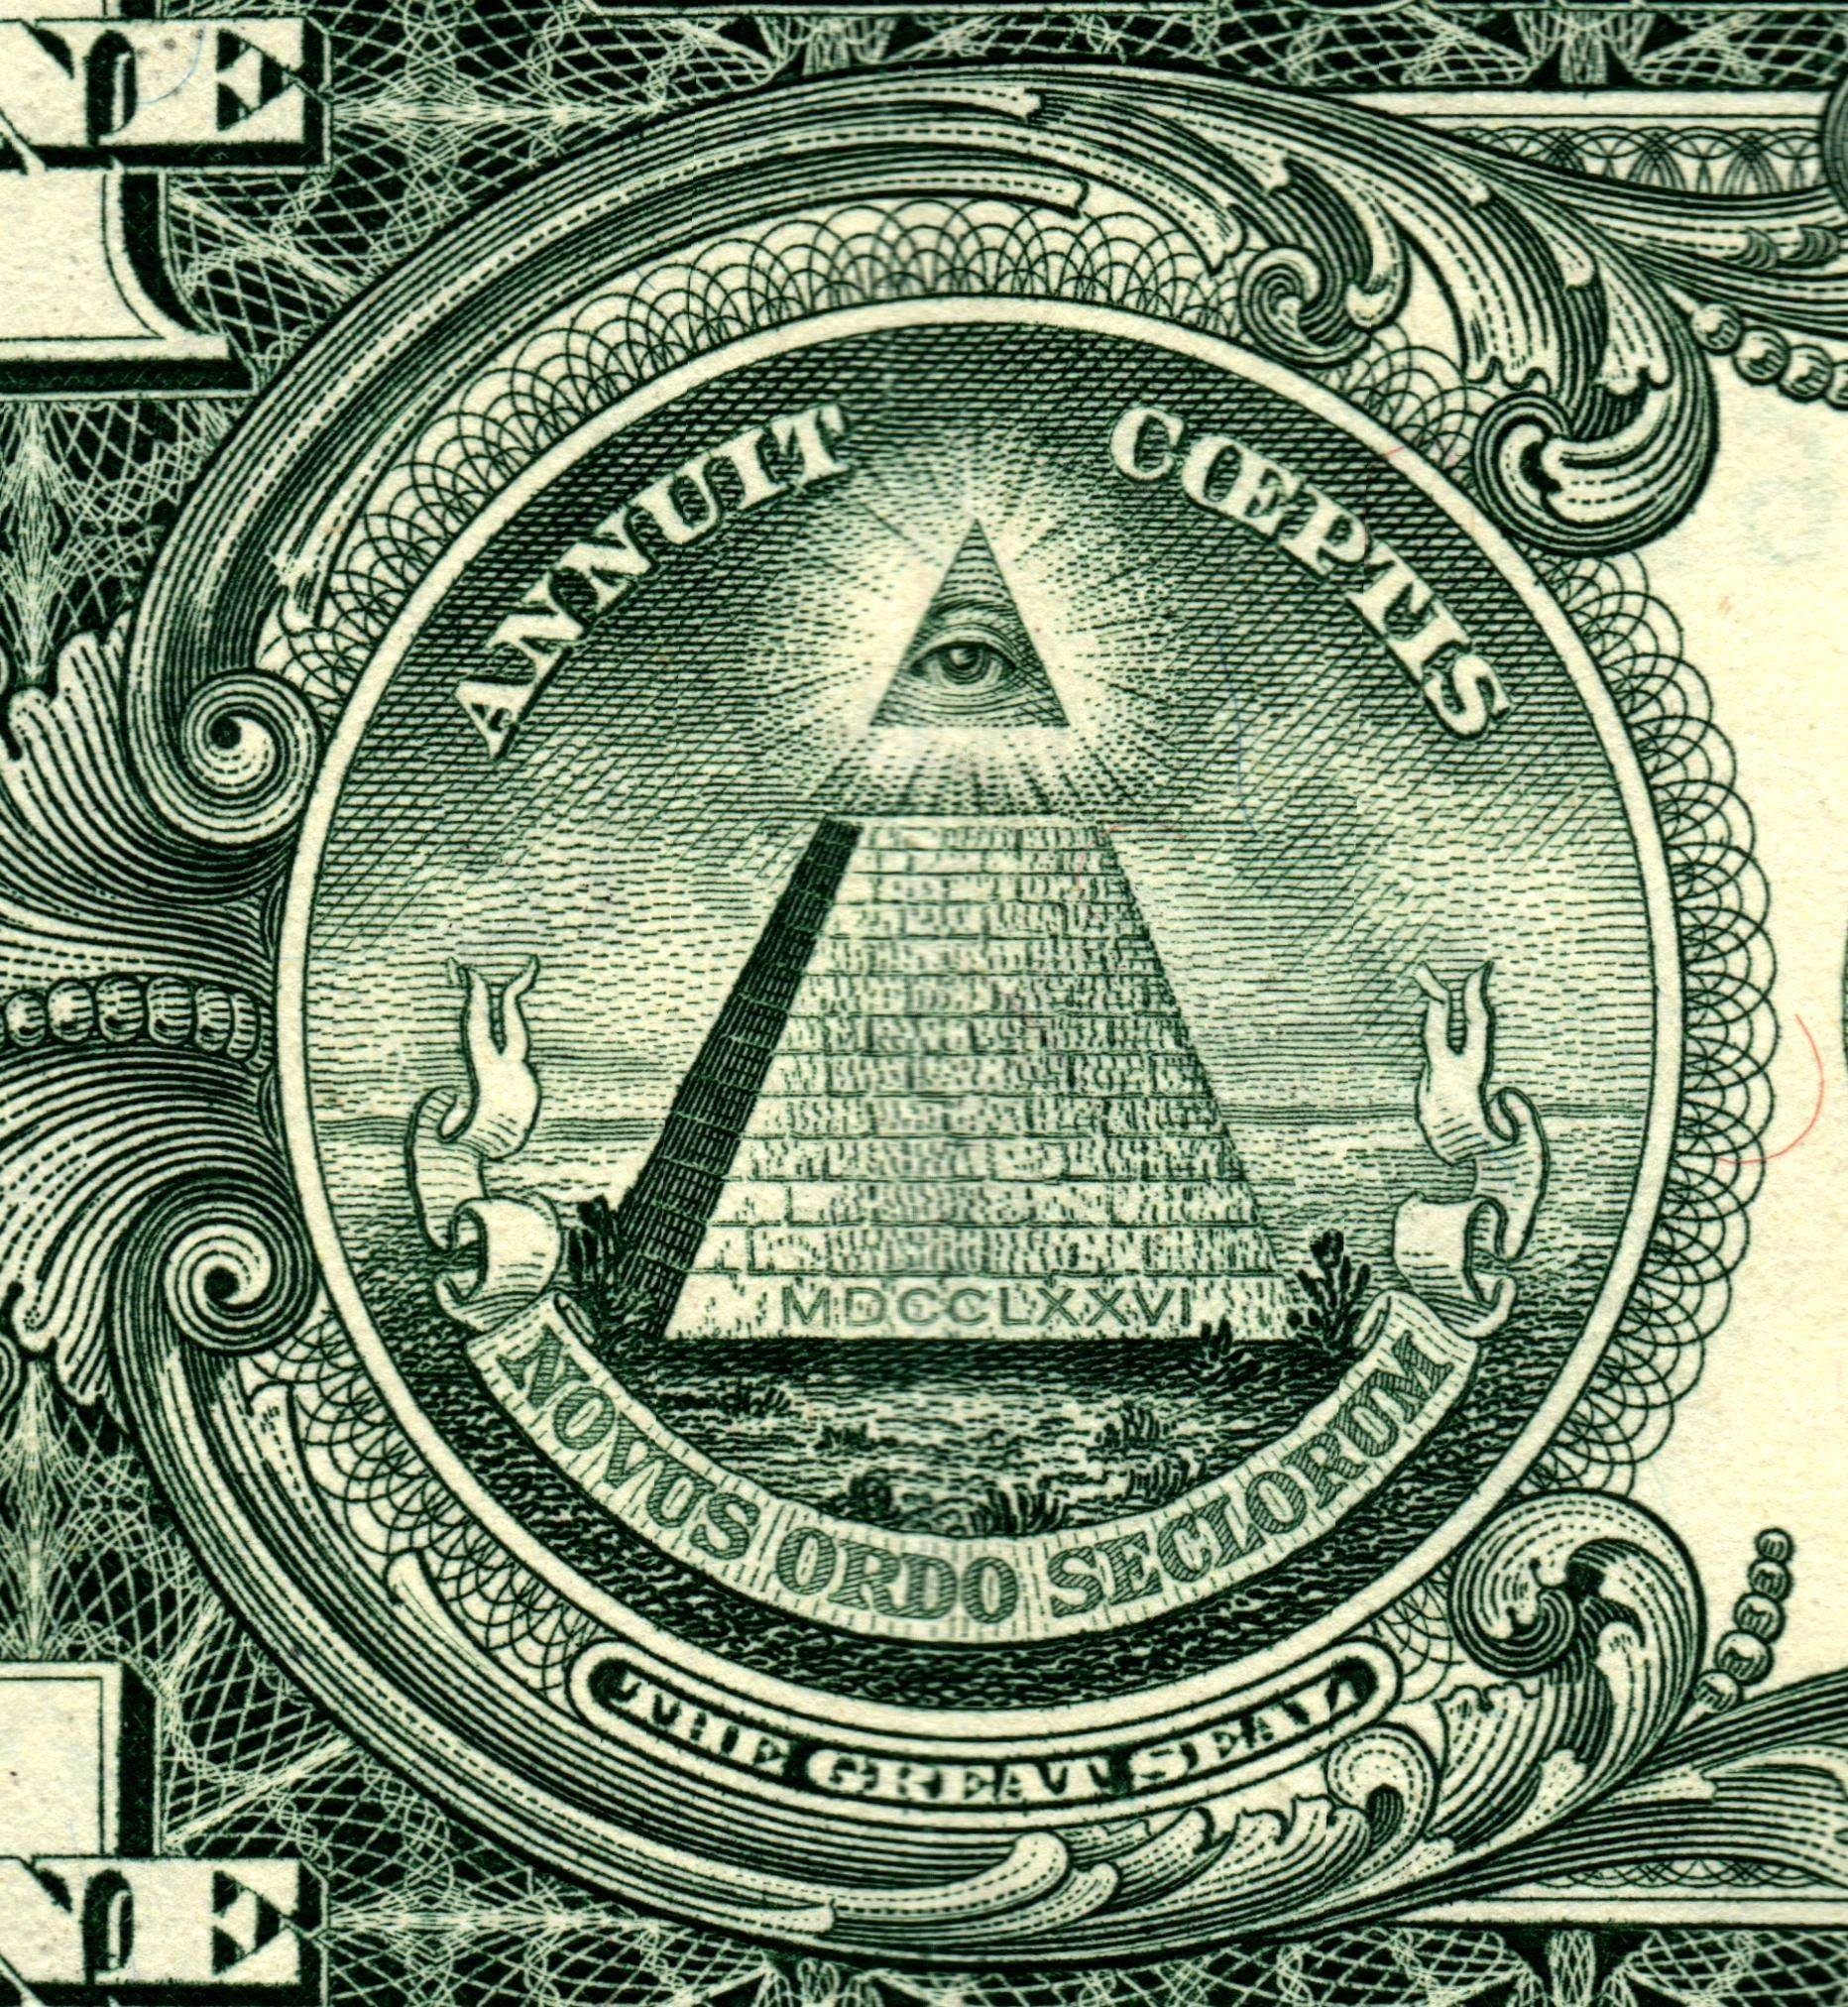 The eye of providence on the american one dollar bill of the eye of providence on the american one dollar bill biocorpaavc Images